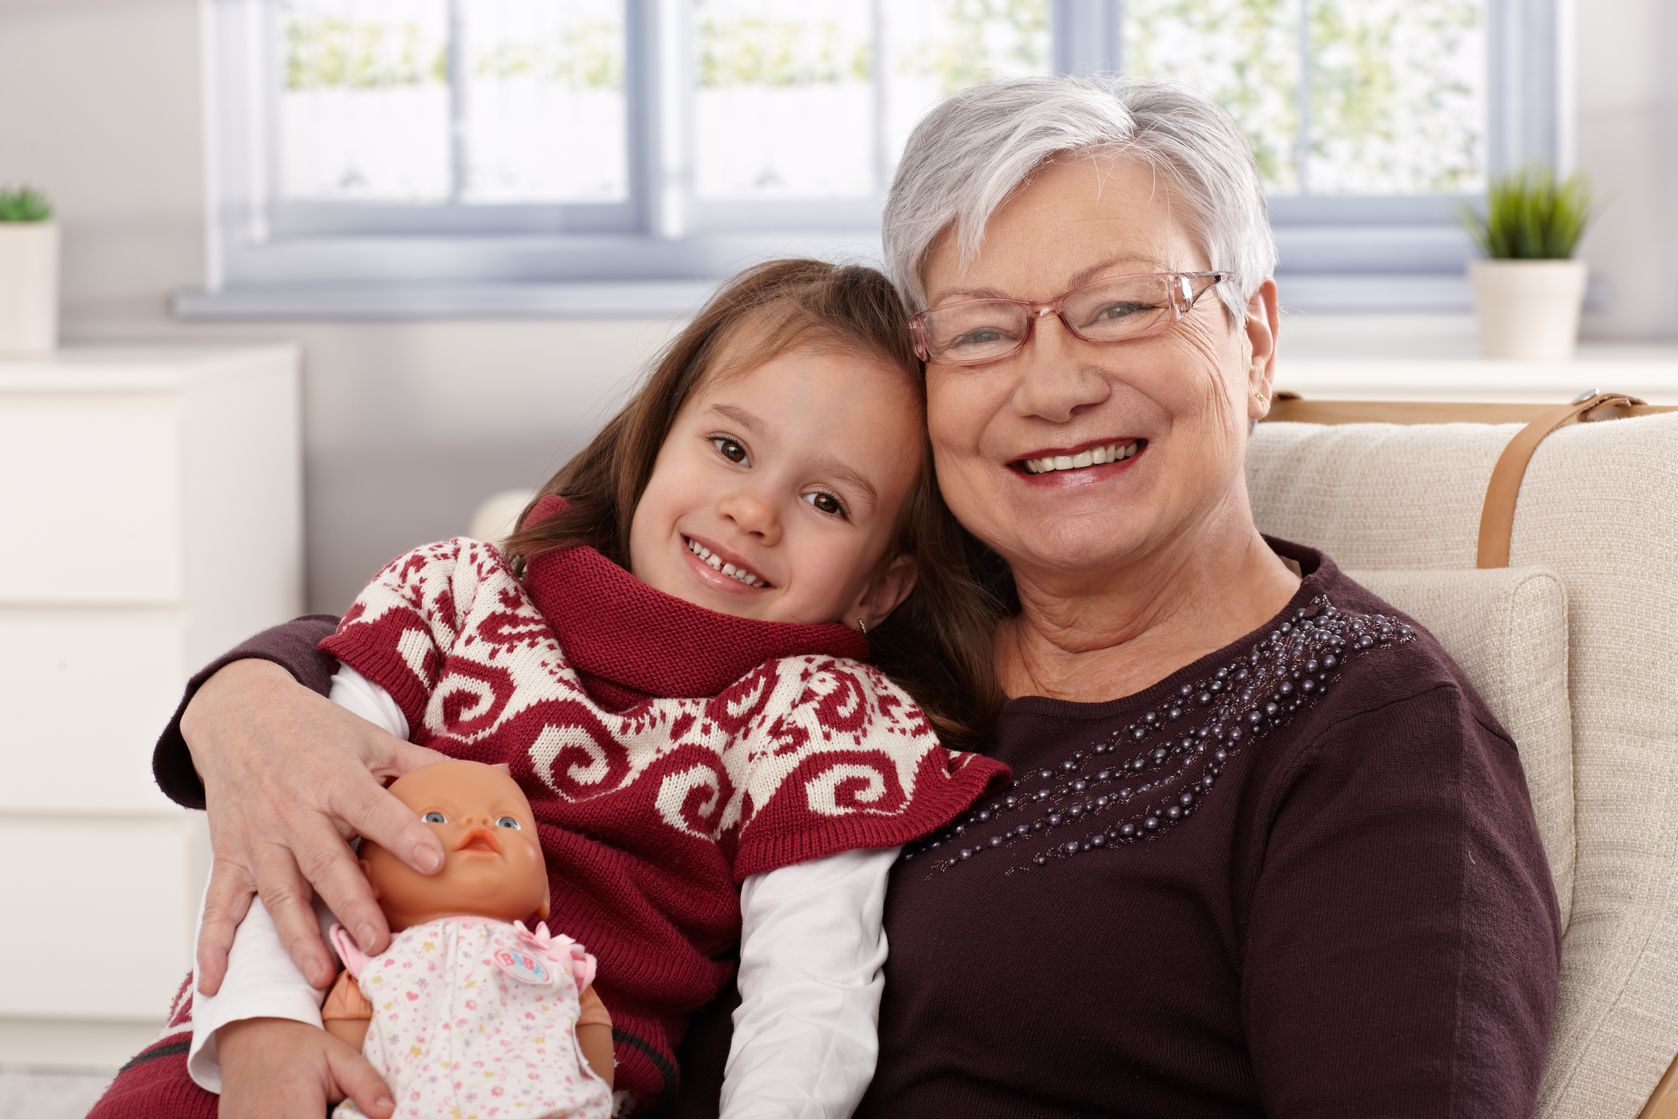 Providence Health & Services: Protecting Health Care Benefits for Seniors and Children